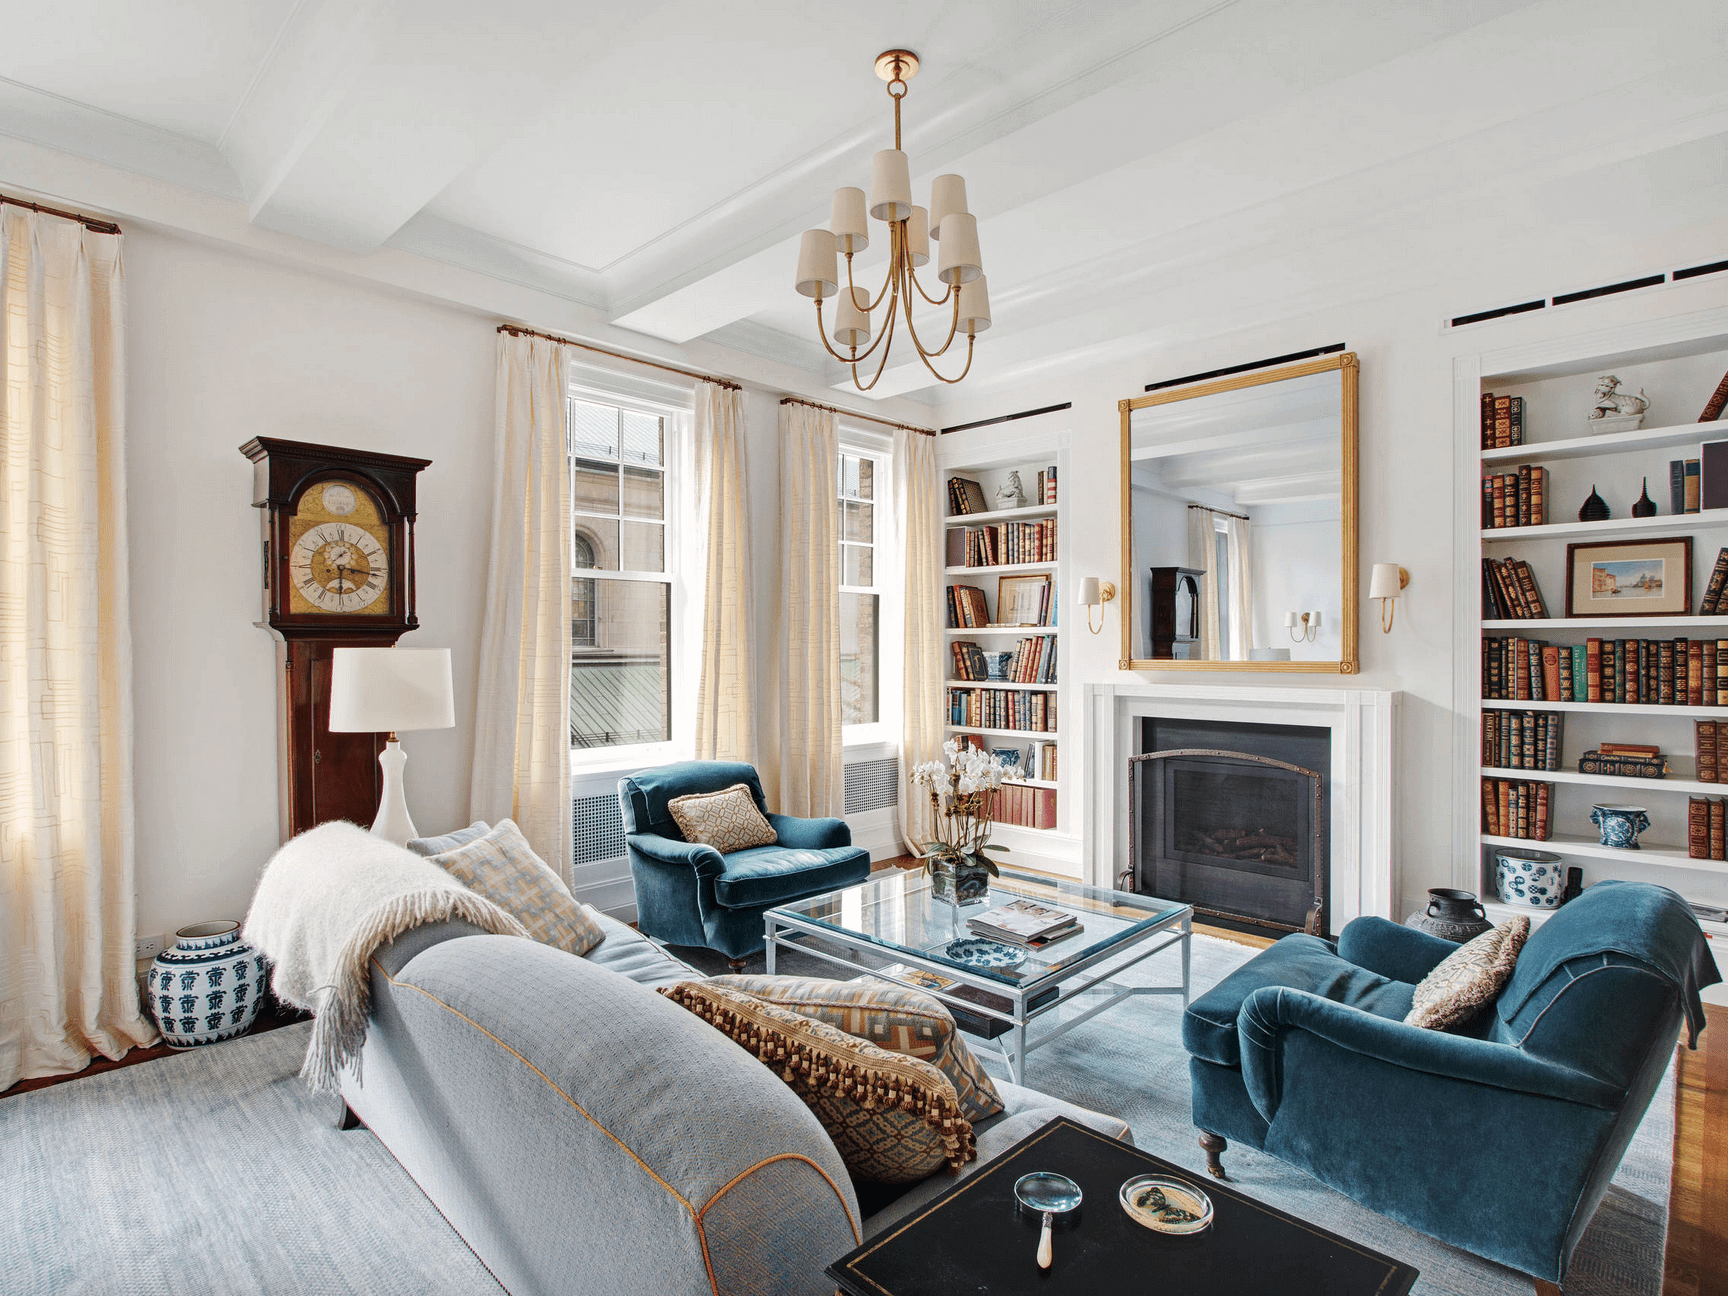 17 Living Rooms with Fireplace and TV That You Have to Check Out!